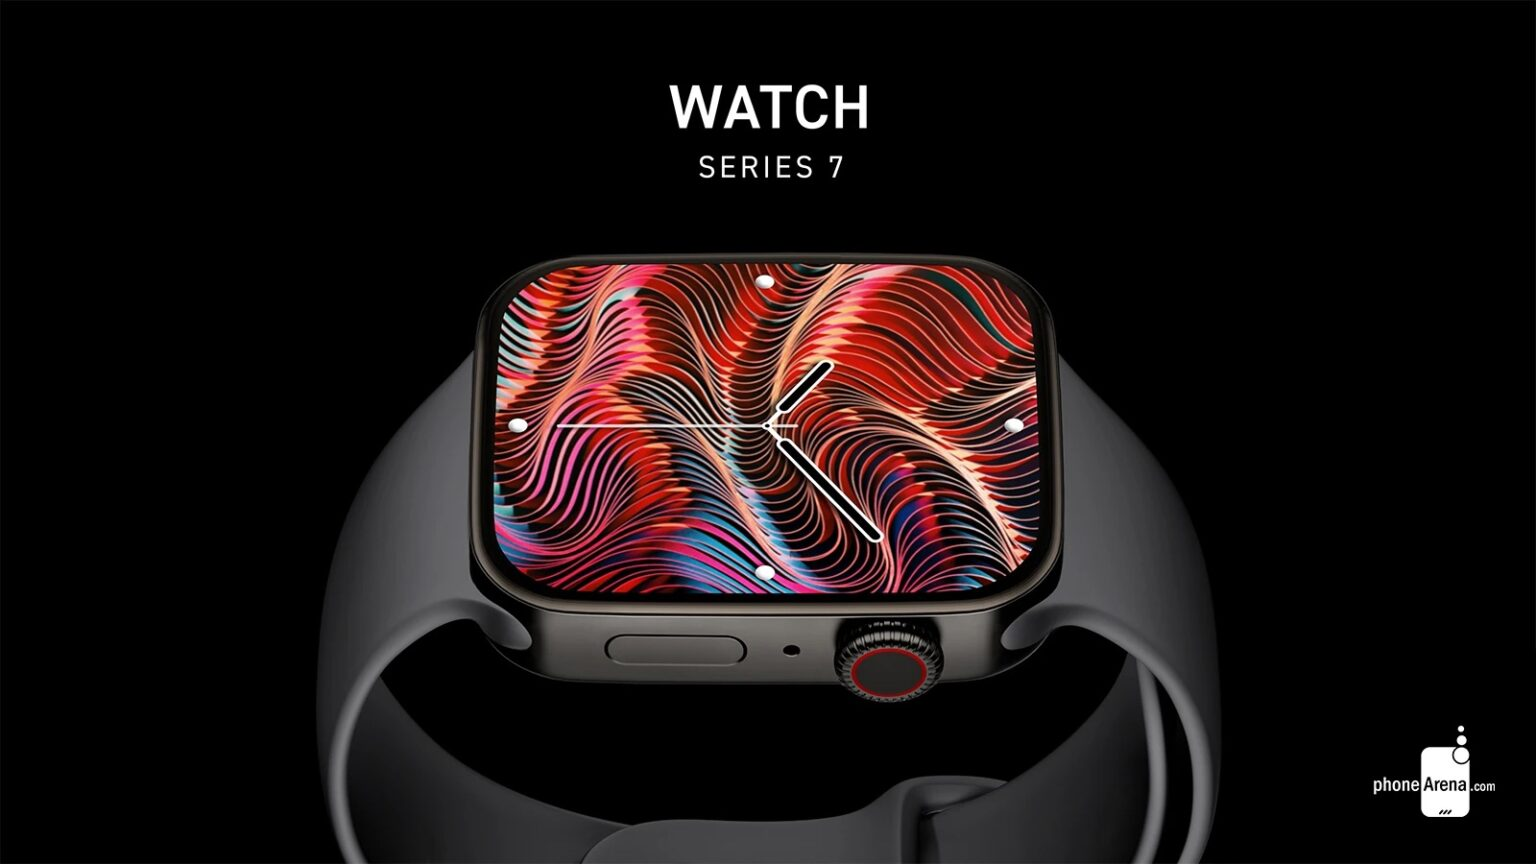 The Apple Watch 7 probably won't be round, but its edges should be less rounded than past models.